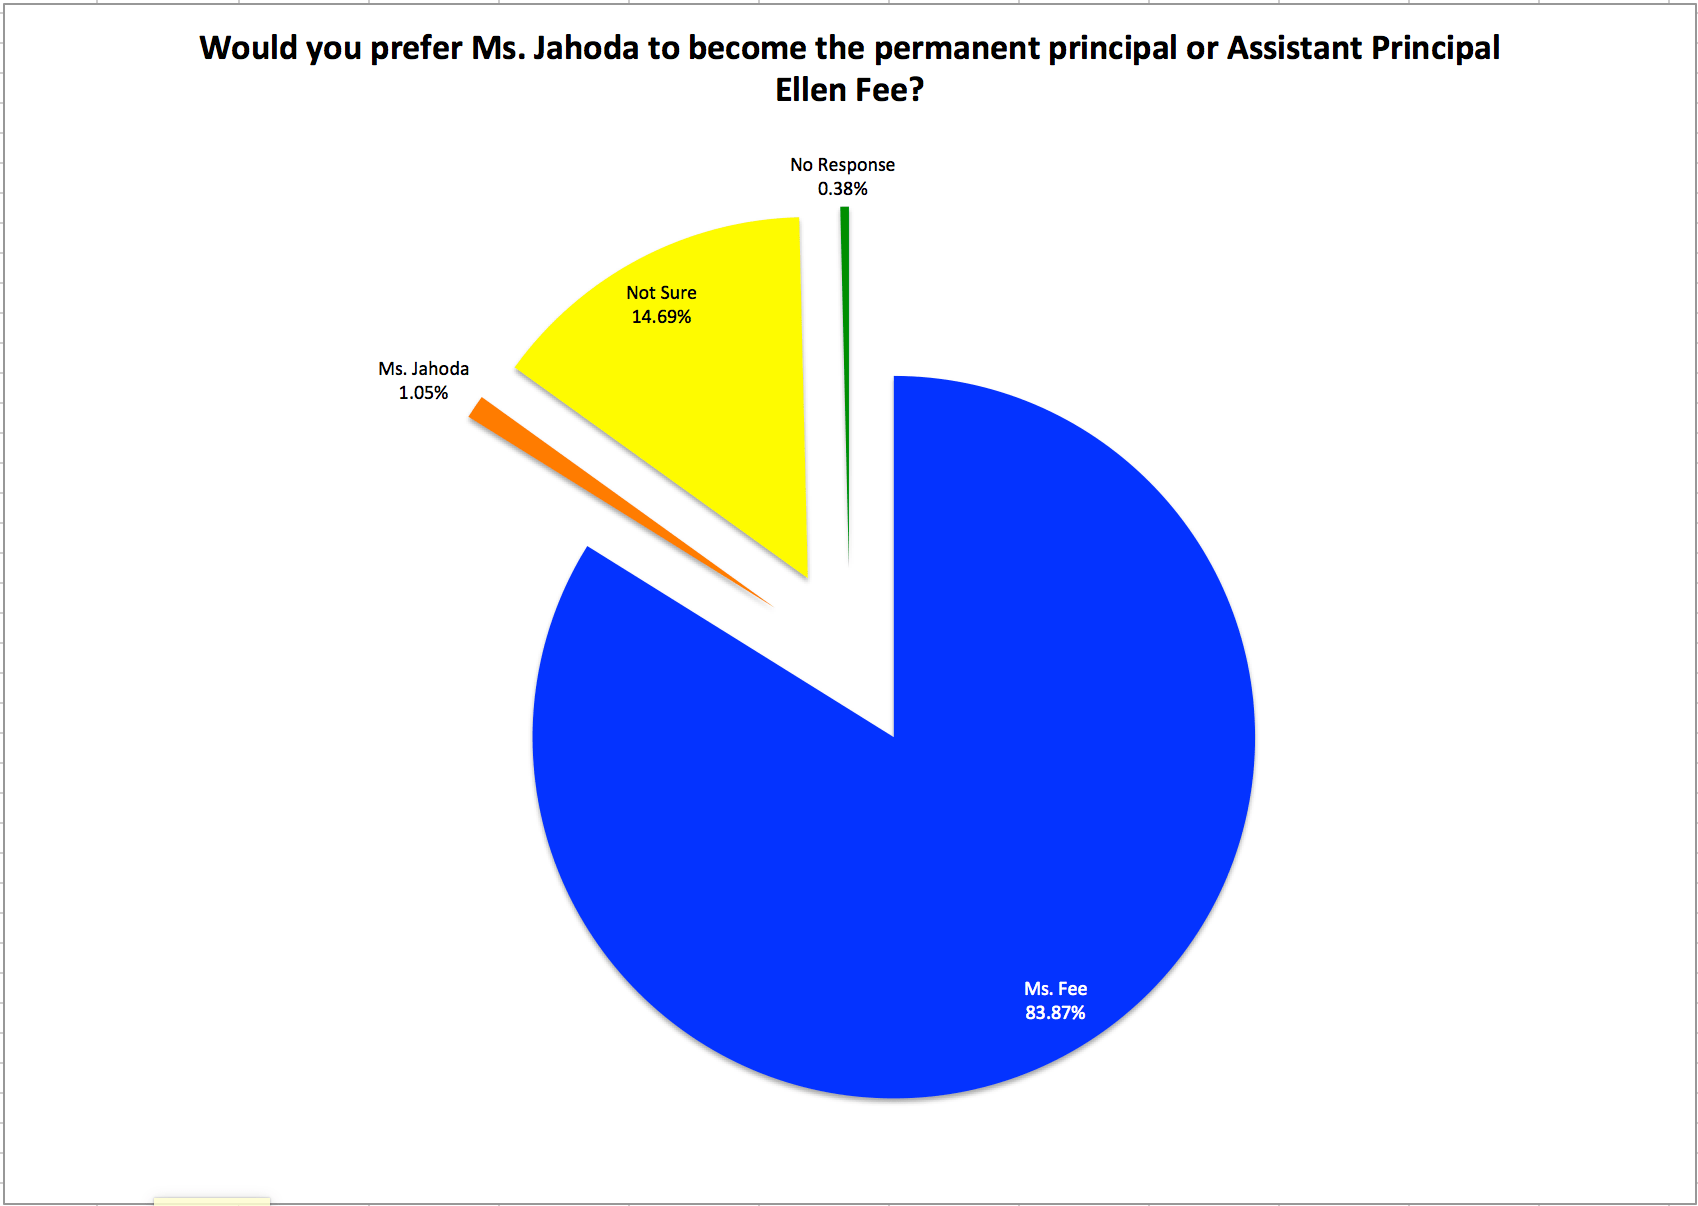 classic poll of students finds % of current harrisites support ms 83 87% of students preferred ms fee 14 69% were not sure and 1 05% preferred ms jahoda as principal 38% left the question blank